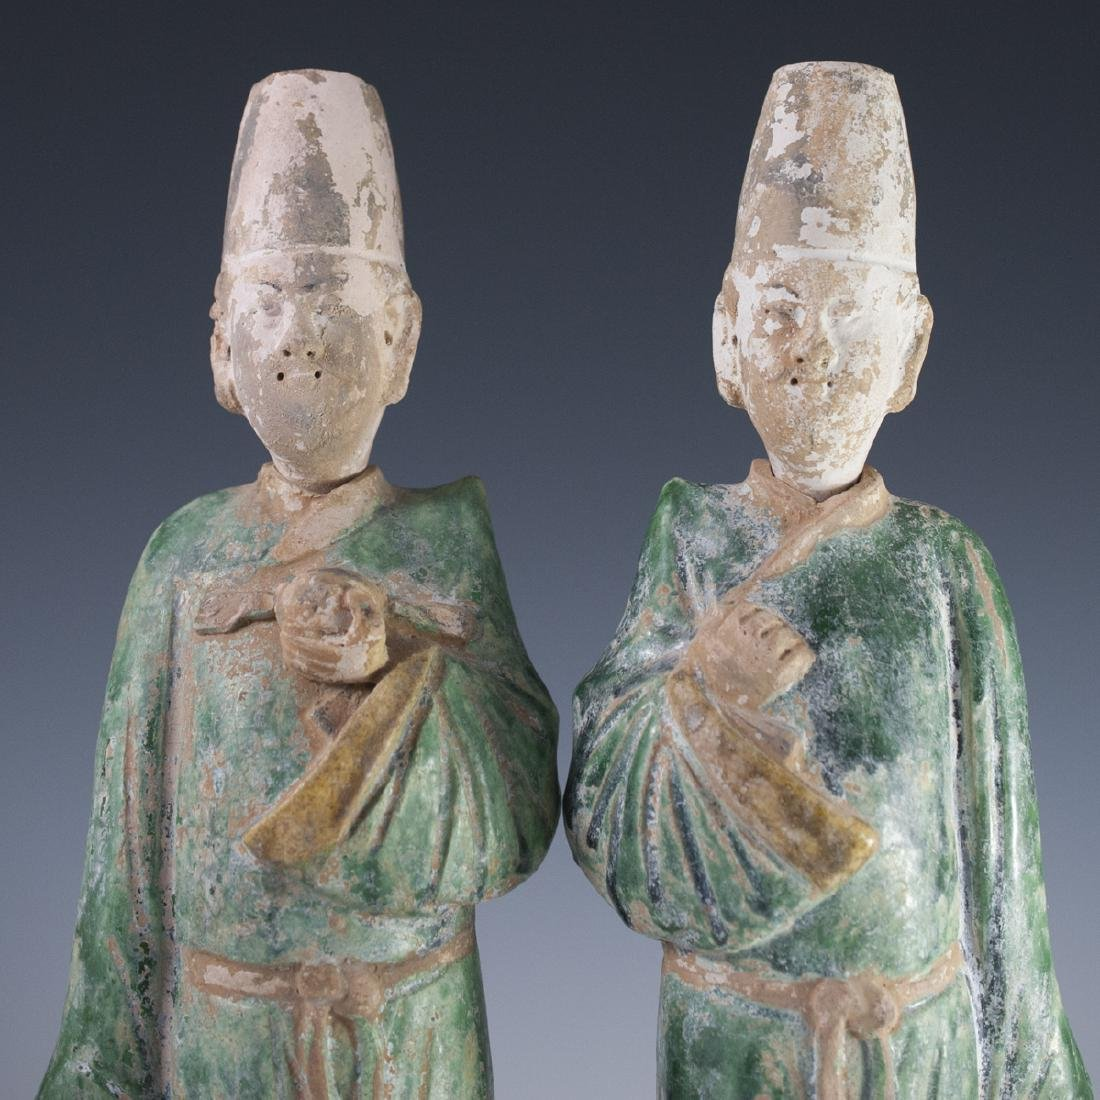 Ming Dynasty Pottery Sculptures - 2